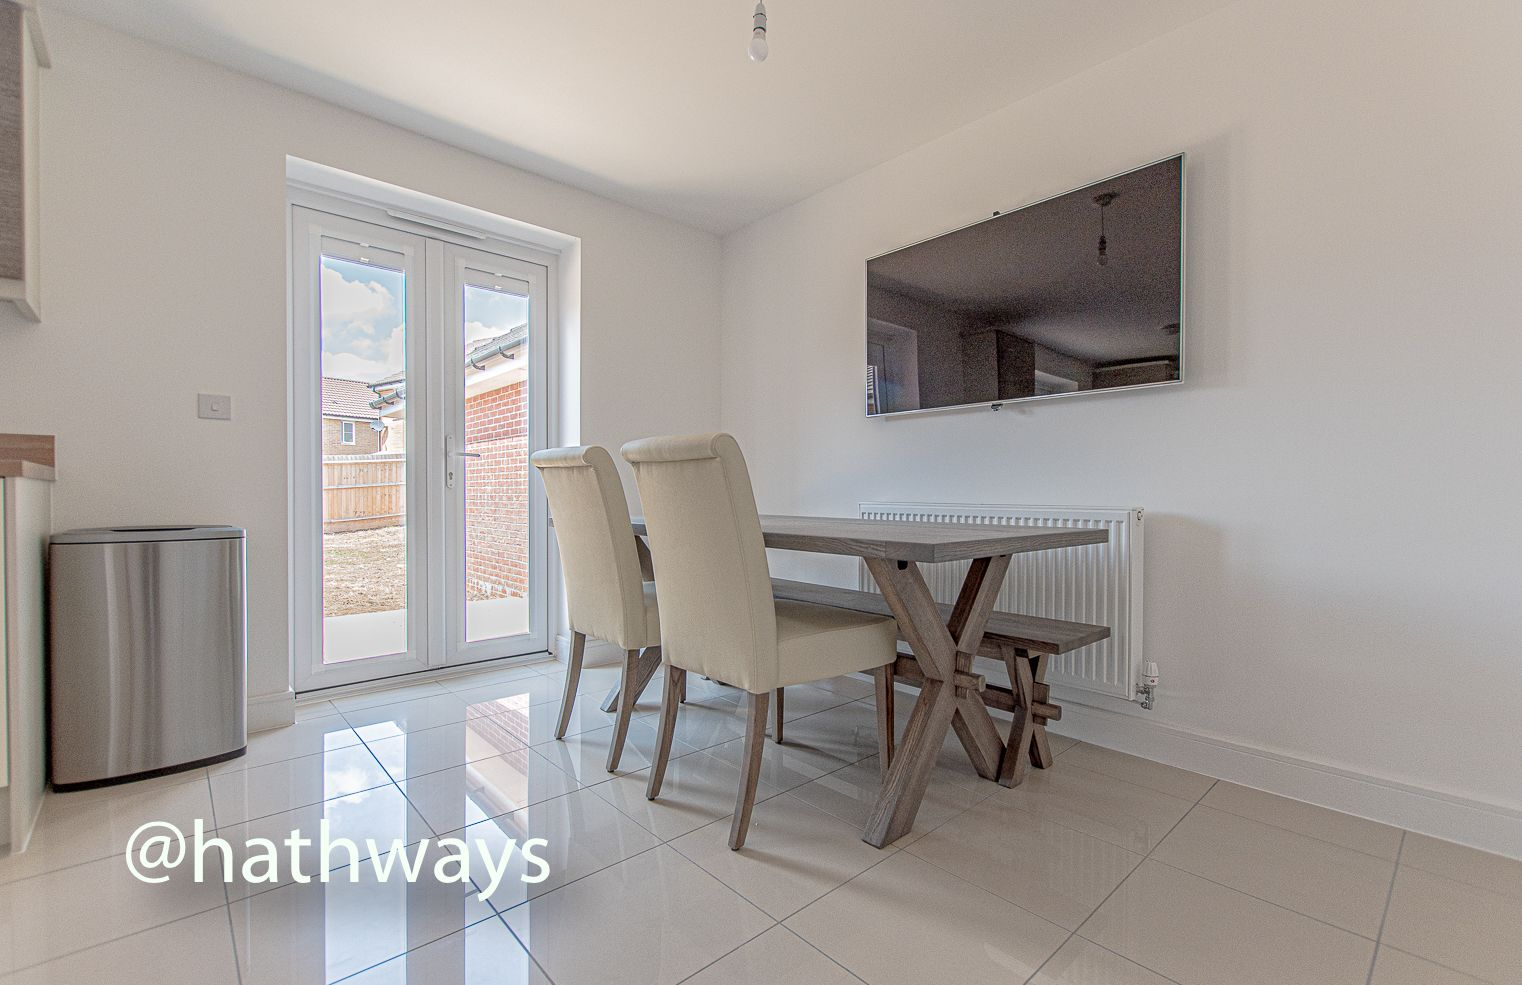 4 bed house for sale in Cwrt Celyn 19